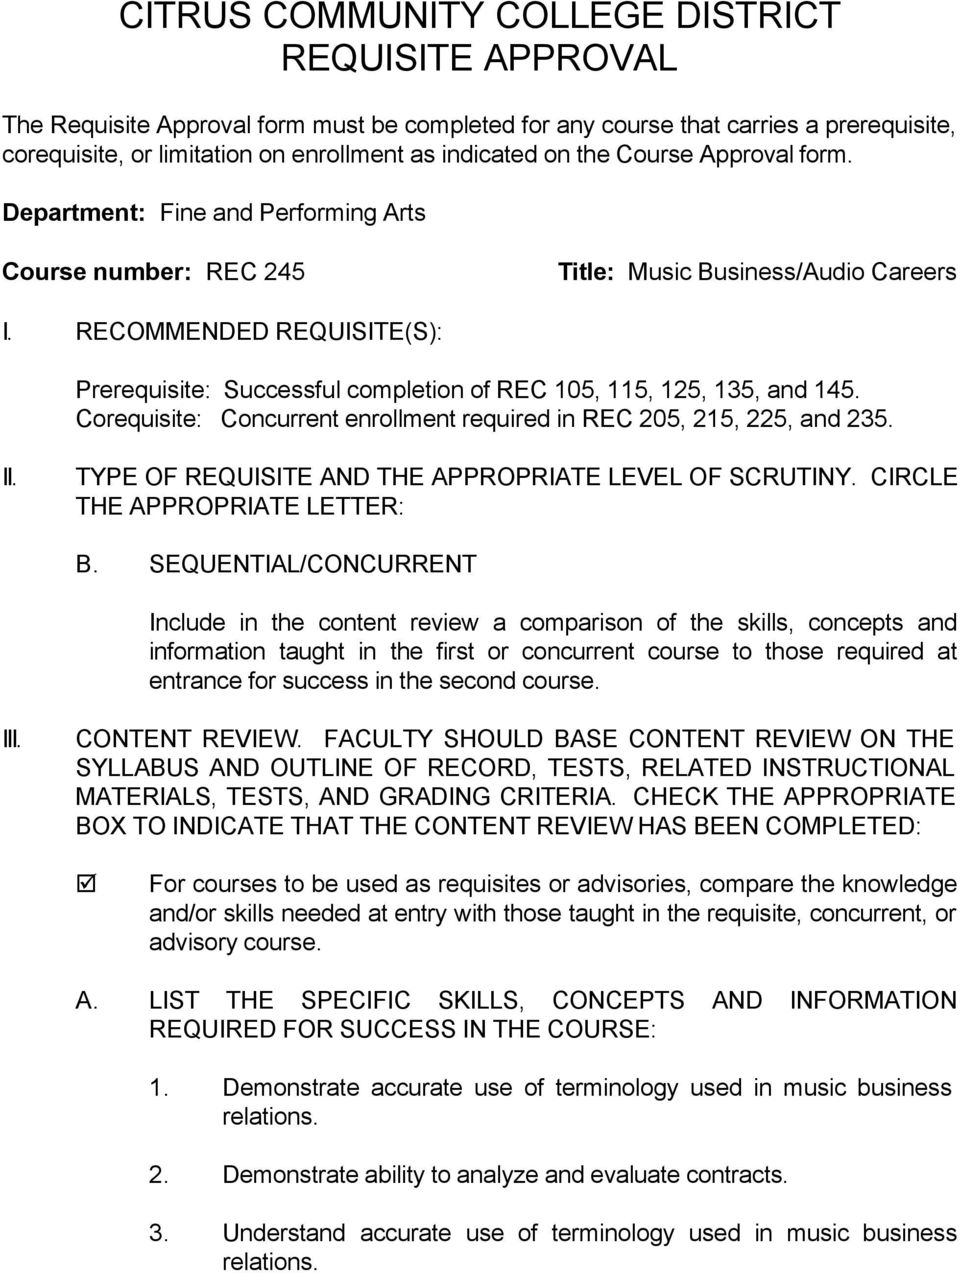 Corequisite: Concurrent enrollment required in REC 205, 215, 225, and 235. II. TYPE OF REQUISITE AND THE APPROPRIATE LEVEL OF SCRUTINY. CIRCLE THE APPROPRIATE LETTER: B.